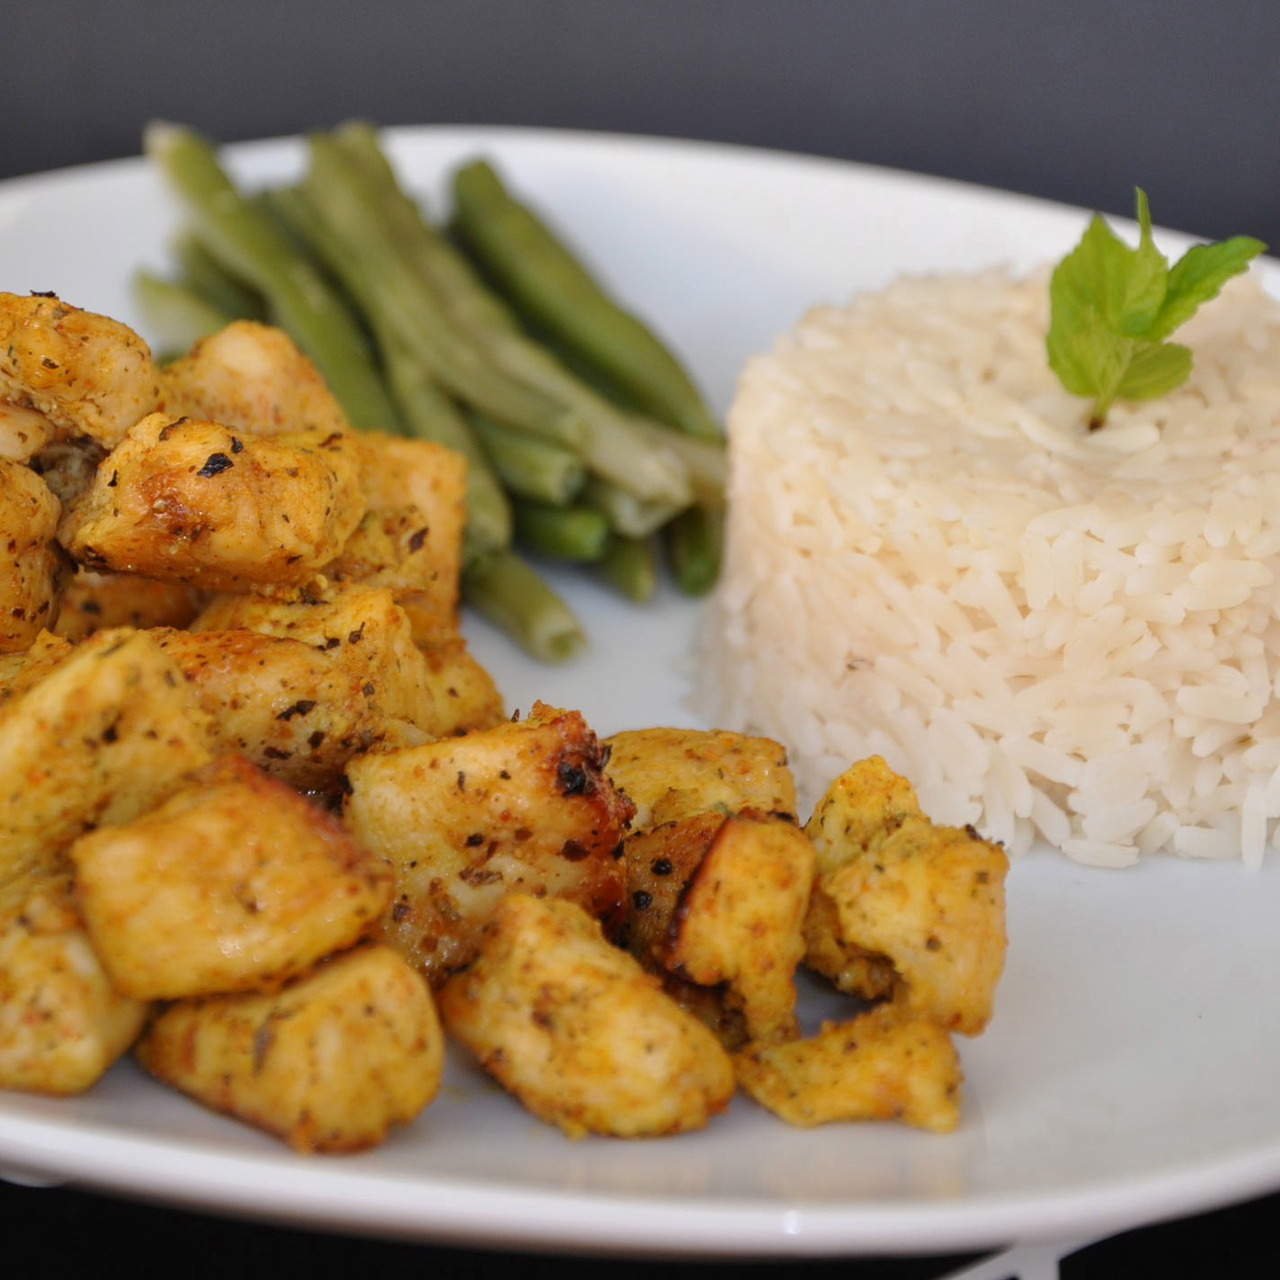 FoodShot #32: Chicken fillet in curry served with rice and long beans Preparation time: 30 minutes Serving: 253 g Calories: 315,5  Protein: 26,9 g Fat: 4,5 g Carbohydrates: 44,6 g Recipe